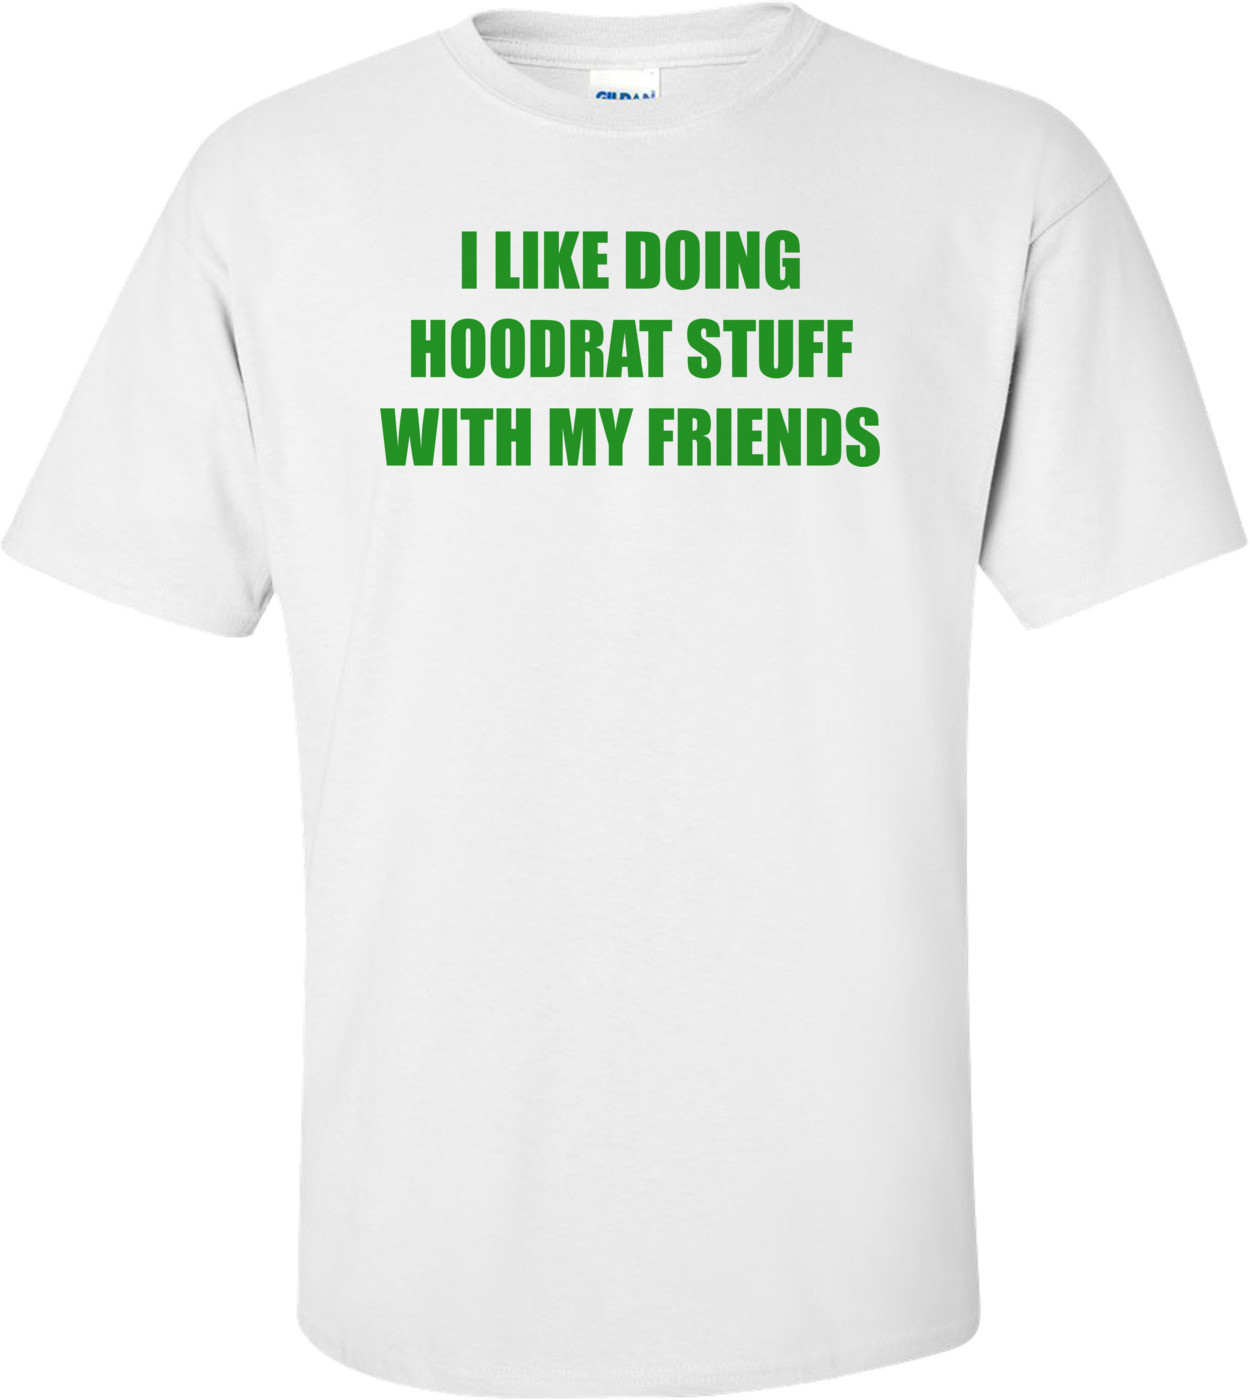 I LIKE DOING HOODRAT STUFF WITH MY FRIENDS Shirt